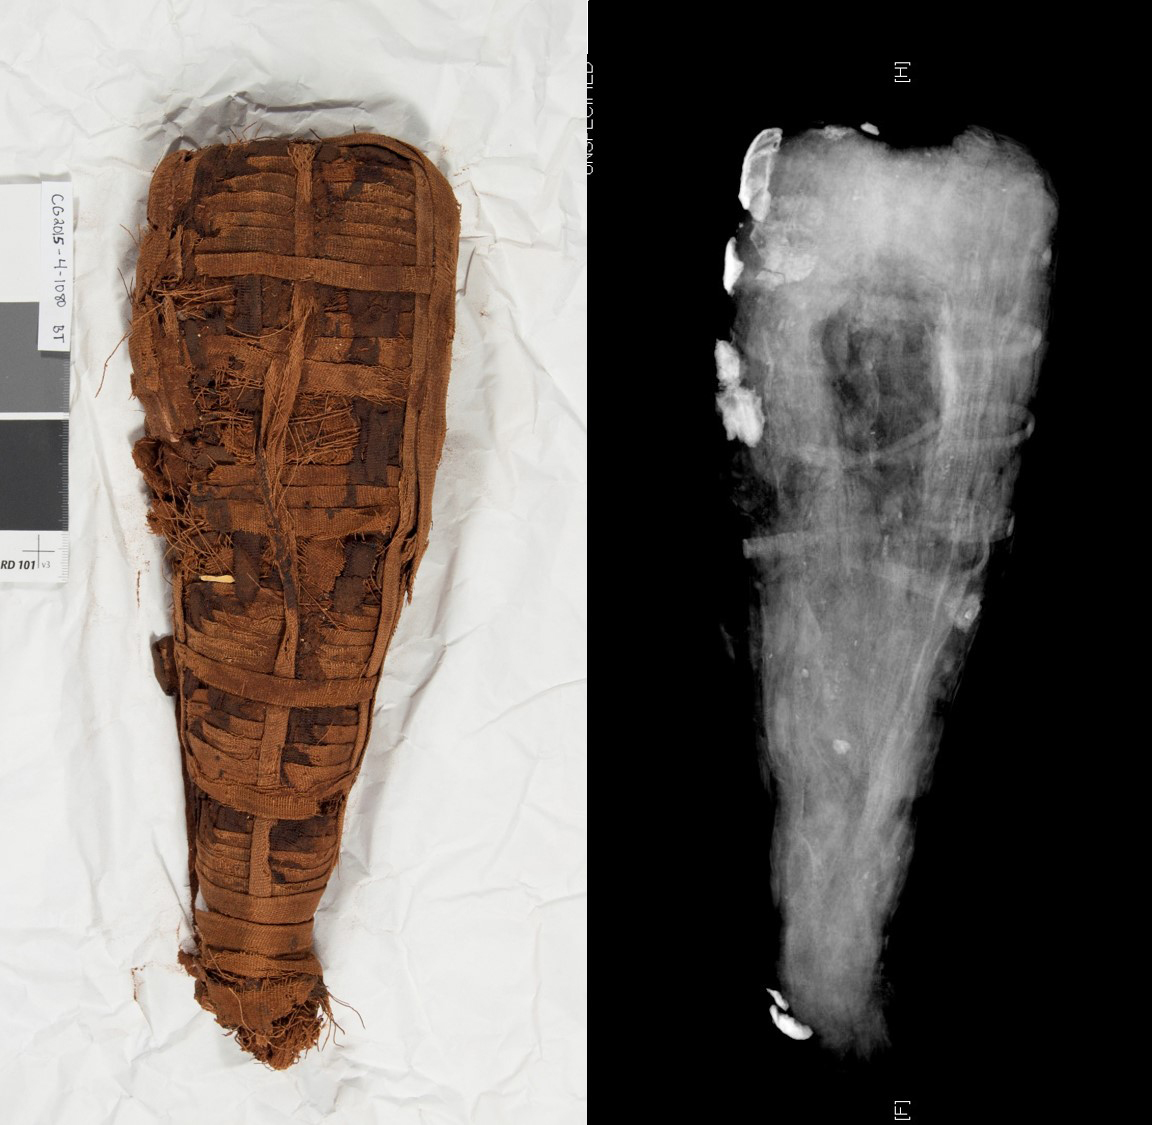 Mummy (left) and radiograph (right) showing nothing inside the wrappings.